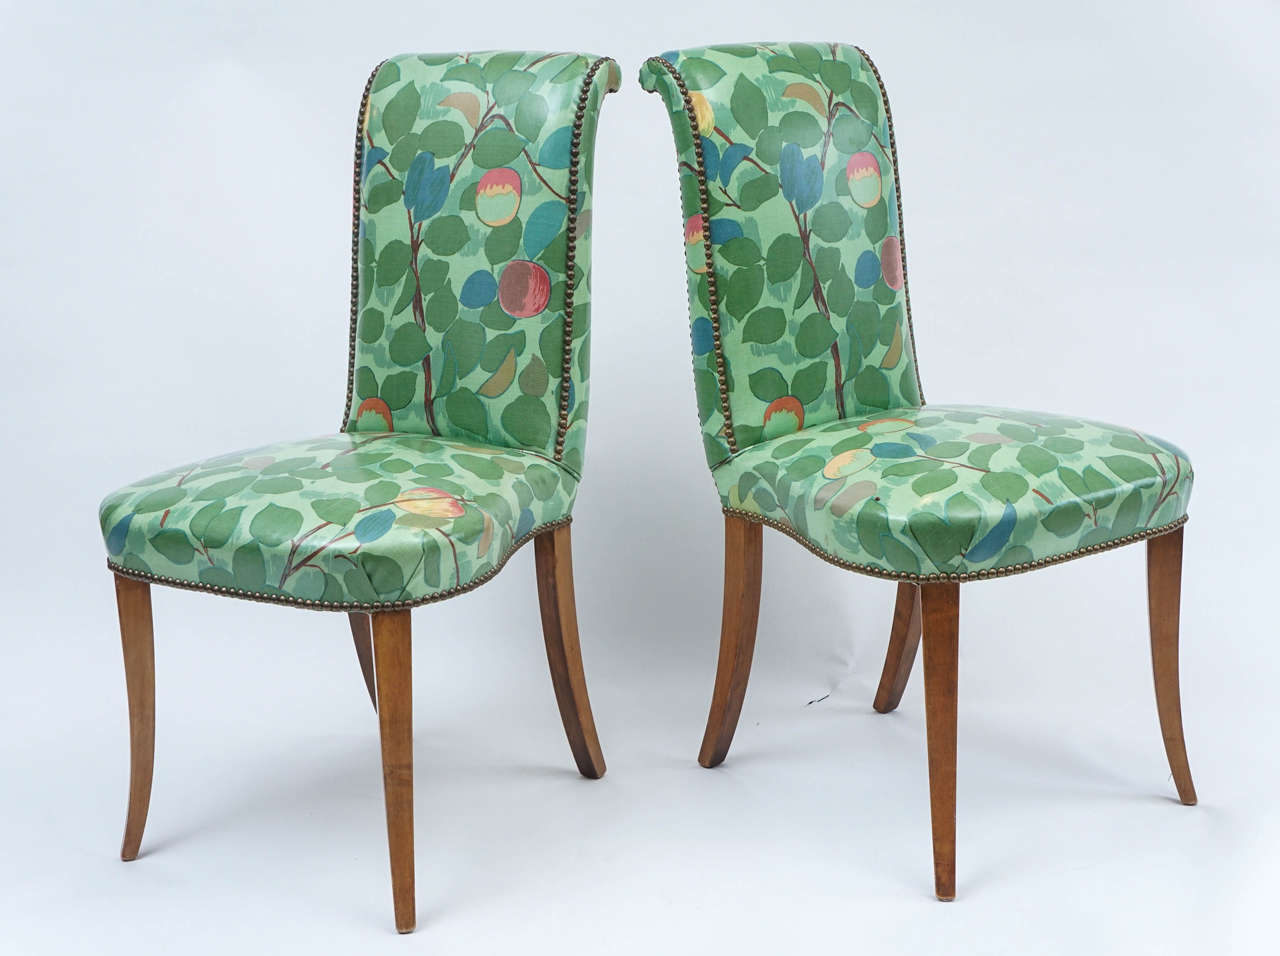 Floral Chairs Wonderful Vinyl Dining Or Chairs In Chic Floral Print With